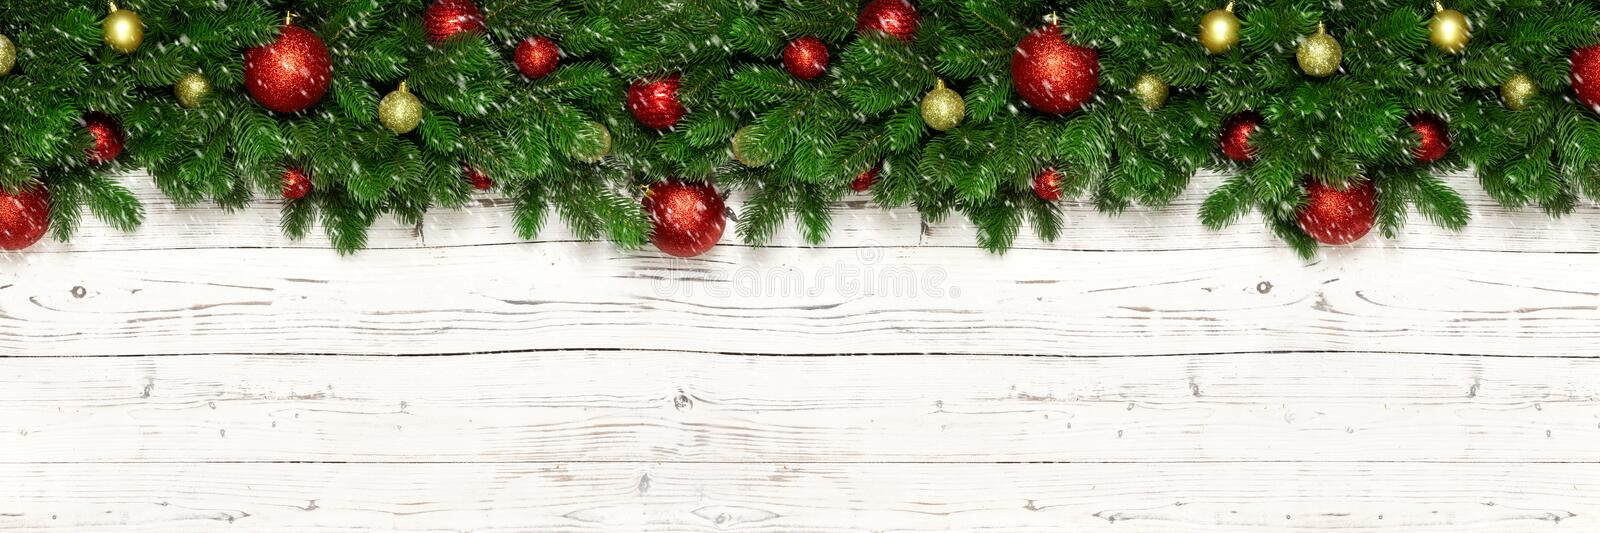 Christmas banner on white wooden background fir tree branches and new year toy ball or bauble. Xmas holiday decoration for promo royalty free stock photo